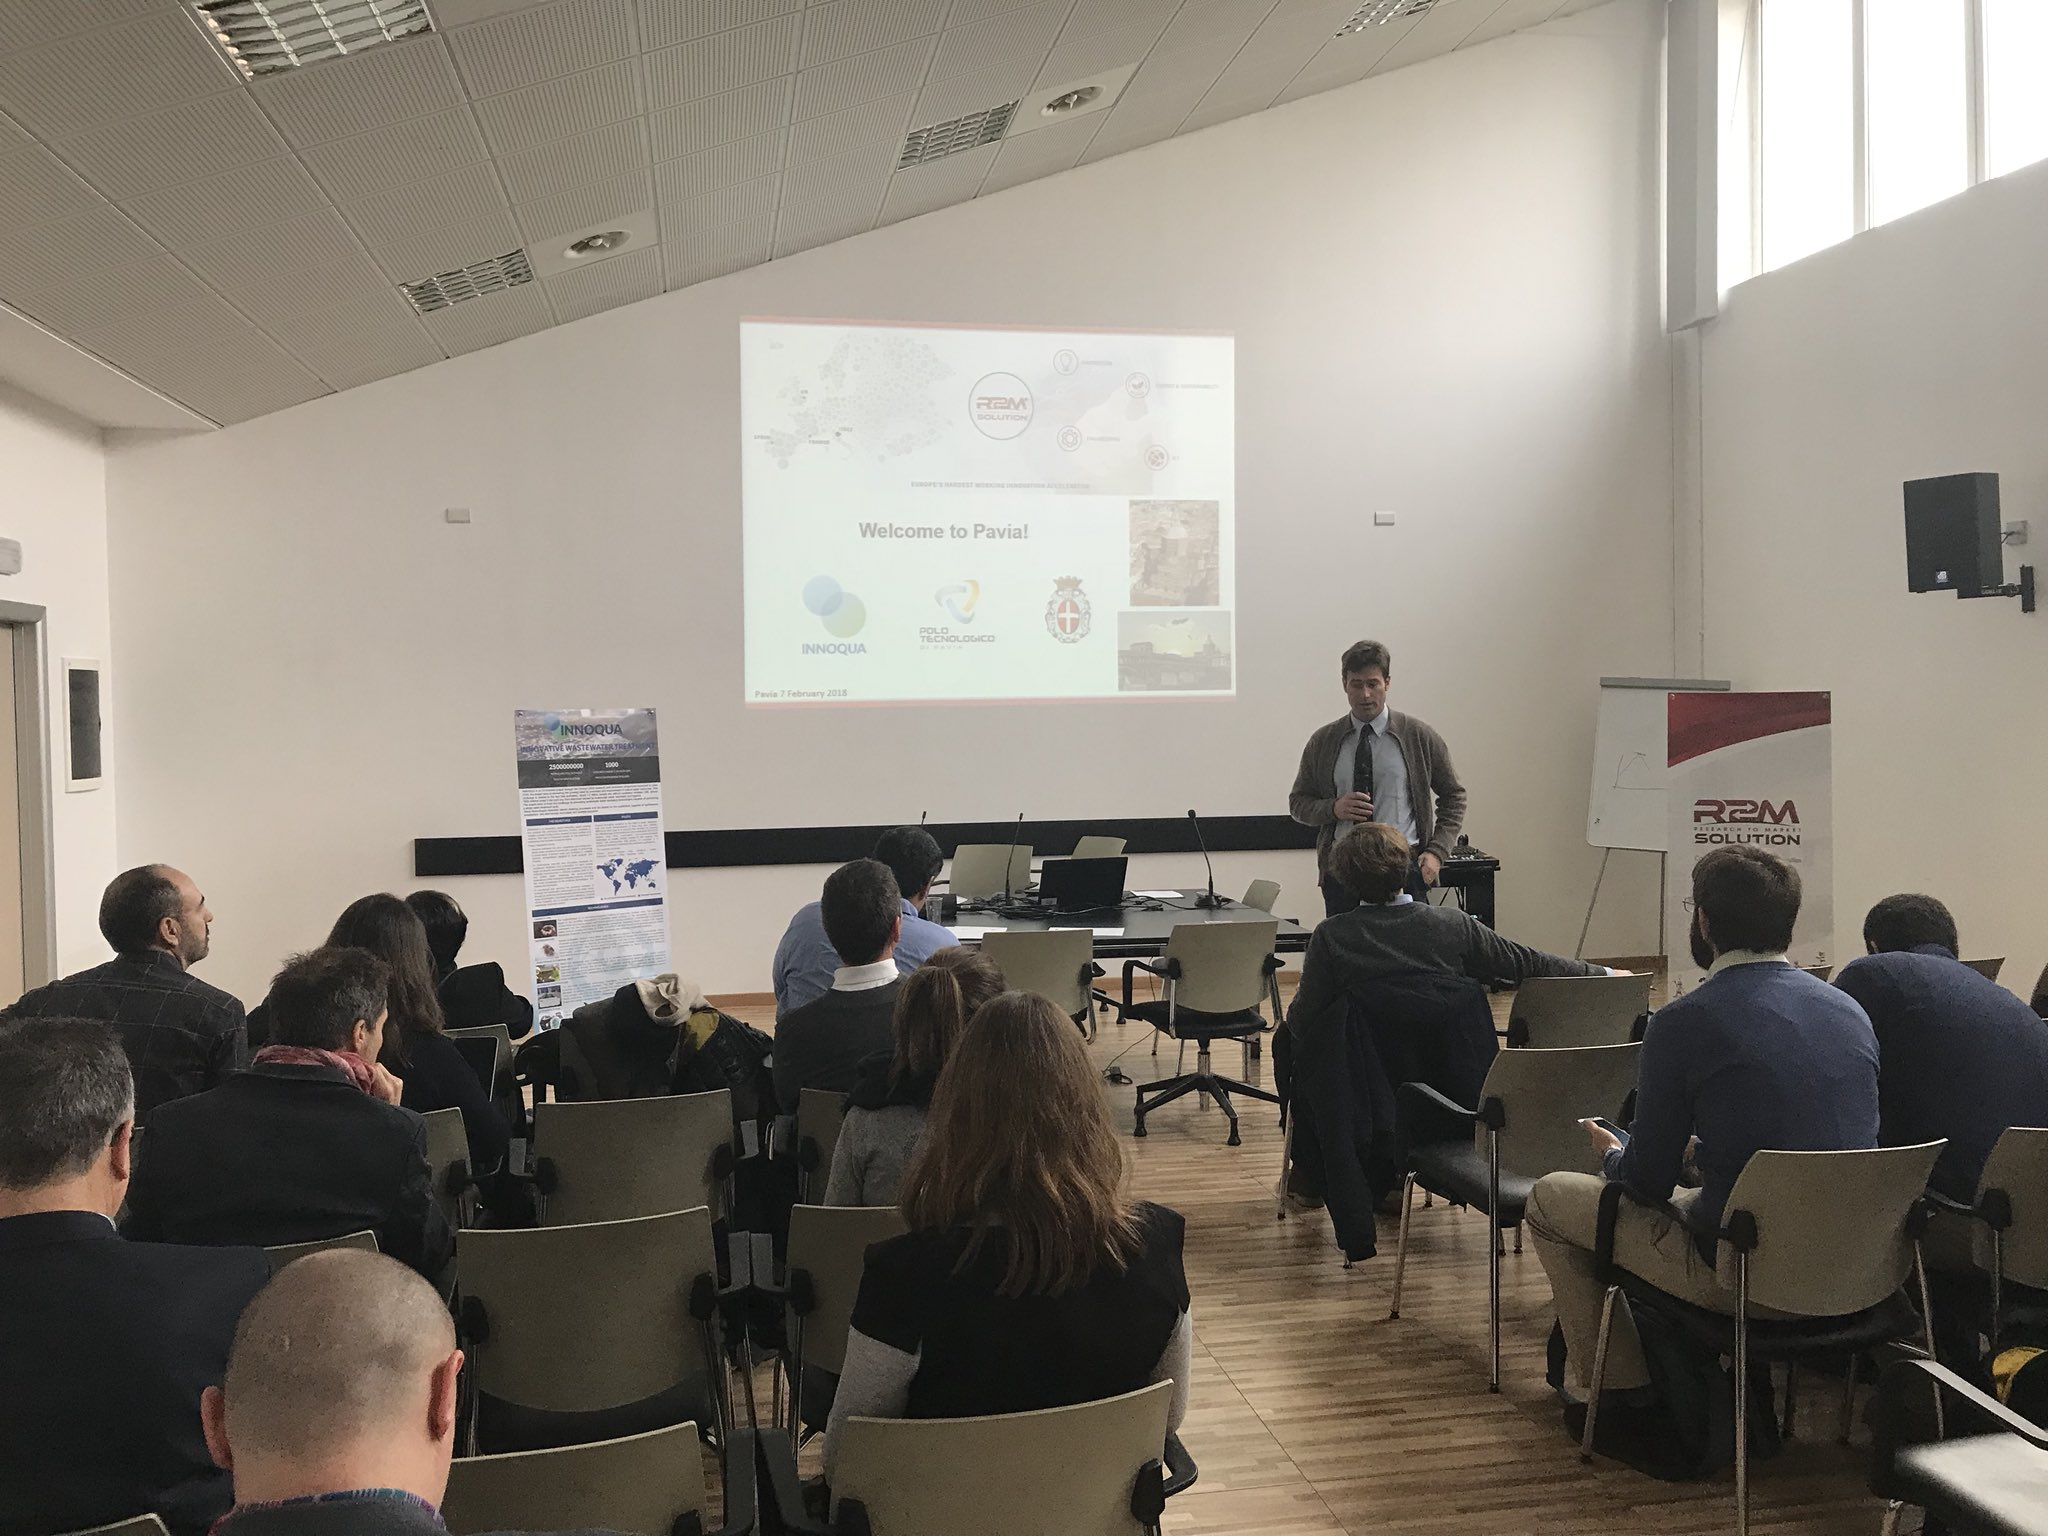 We are happy to have hosted the @innoqua_project  Team for the PM4 meeting in the @r2m_italy headquarters in Pavia. A further step towards the development of a new nature-based technology for wastewater treatment has been done. Thanks to all the partners involved. https://t.co/jZ5ZRR5TxR